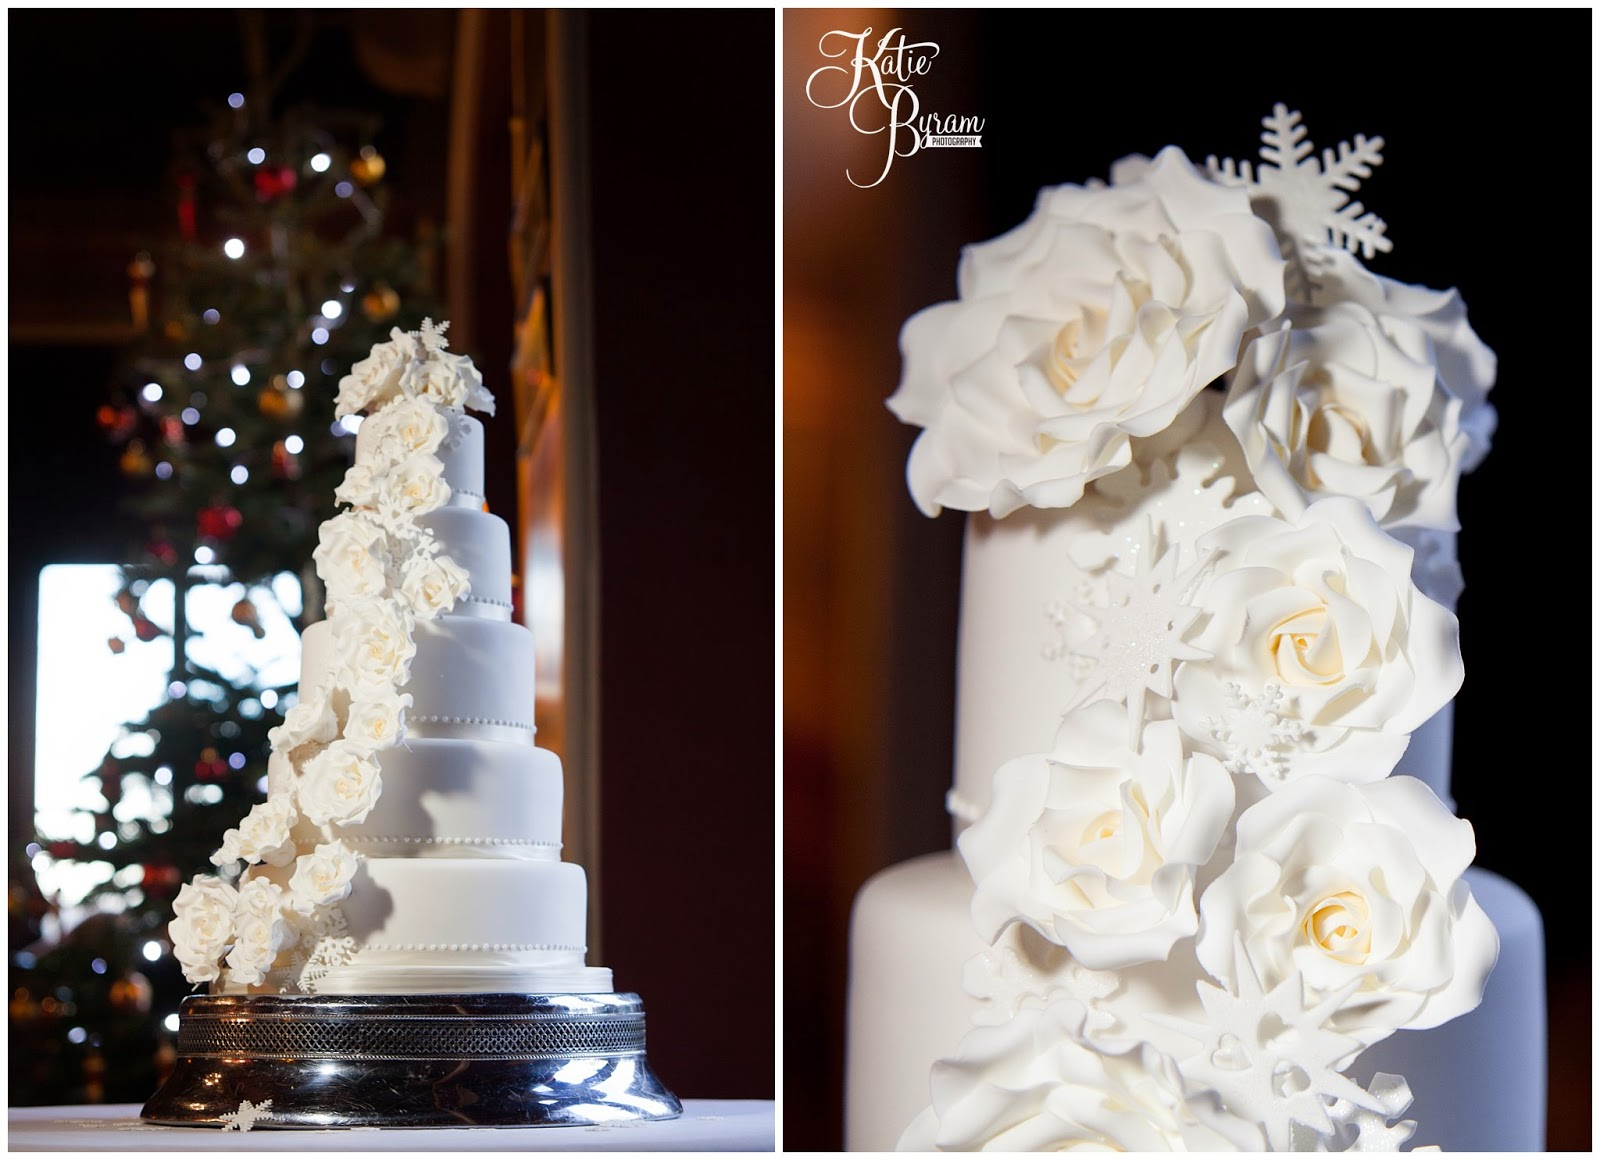 the mastercakesmith, winter wedding cake, ellingham hall wedding, alnwick wedding, katie byram photography, ellingham hall, mia sposa bridal, wedding venues north east, newcastle wedding photographer, ellingham, alnwick treehouse wedding, adam prest flowers, winter wedding, winter wedding theme, by wendy stationery, quirky wedding photography, northumberland wedding, northumberland, dani.mua, dani make up artist, lisa cameron hair